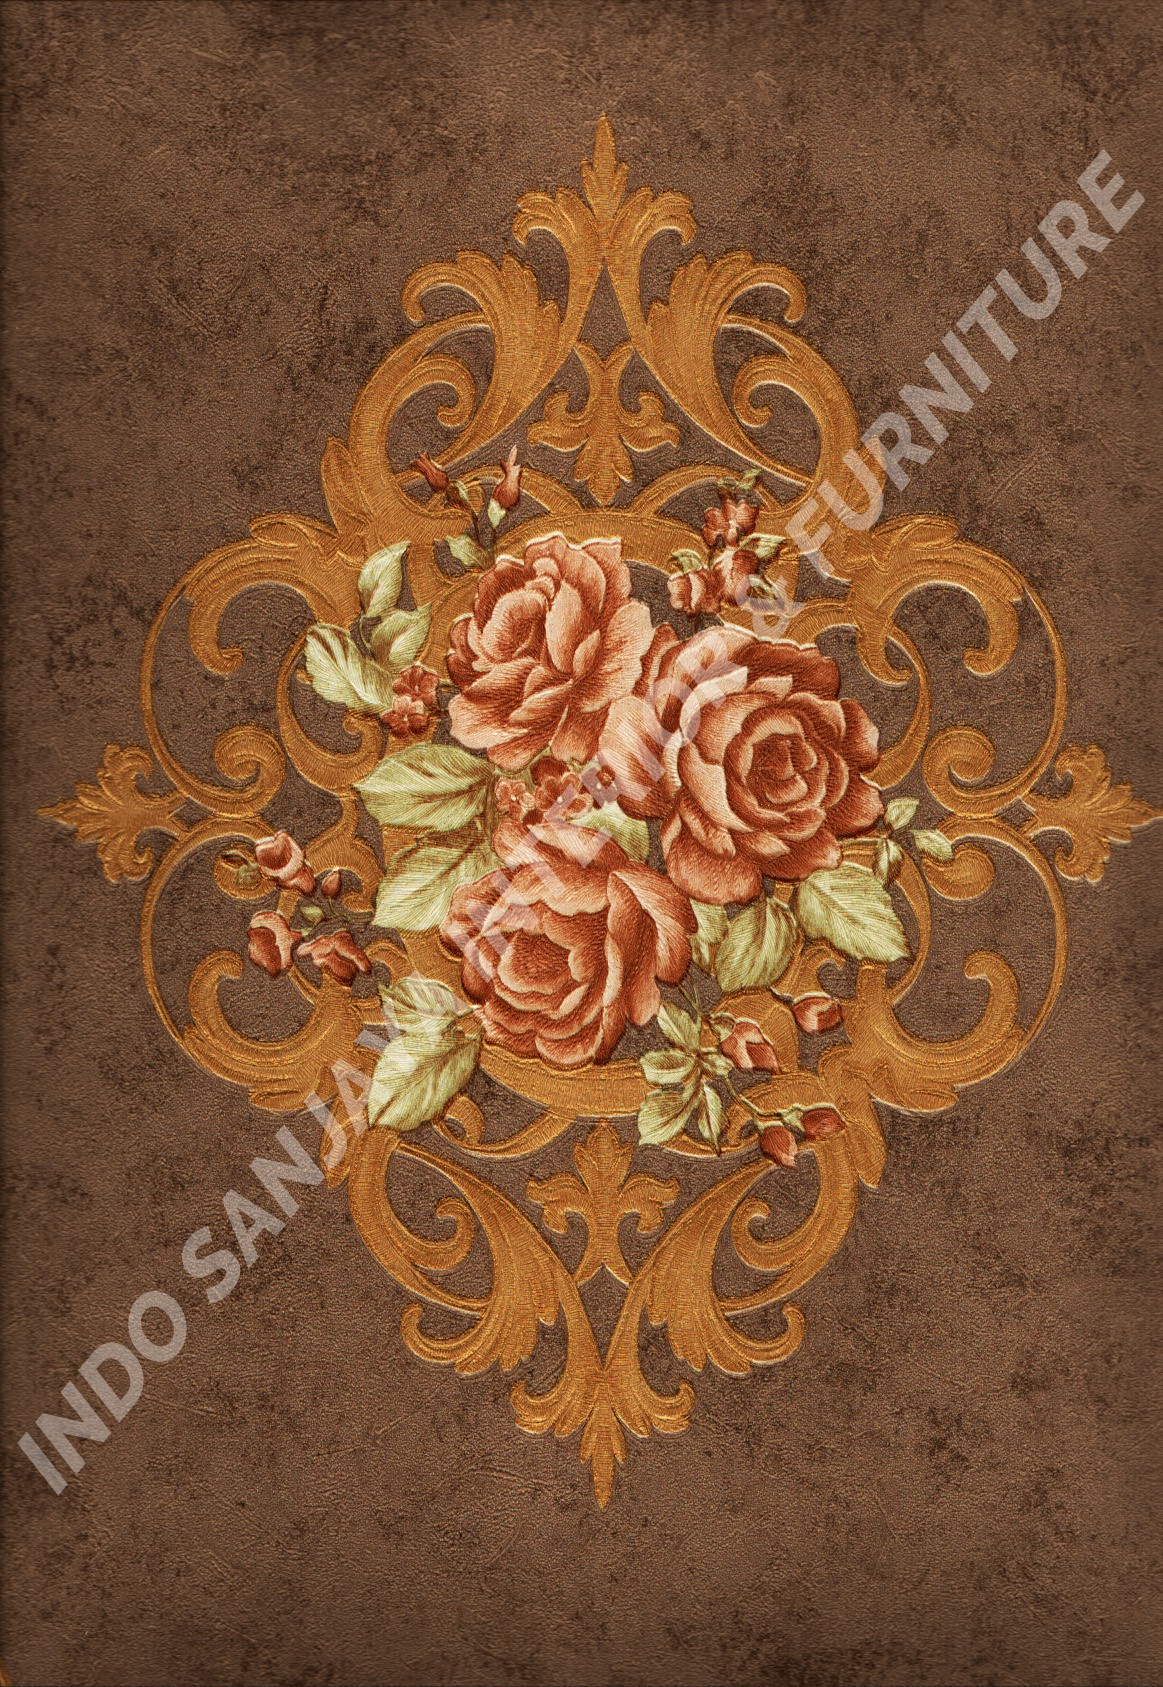 wallpaper   Wallpaper Klasik Batik (Damask) HD-9-16:HD-9-16 corak  warna